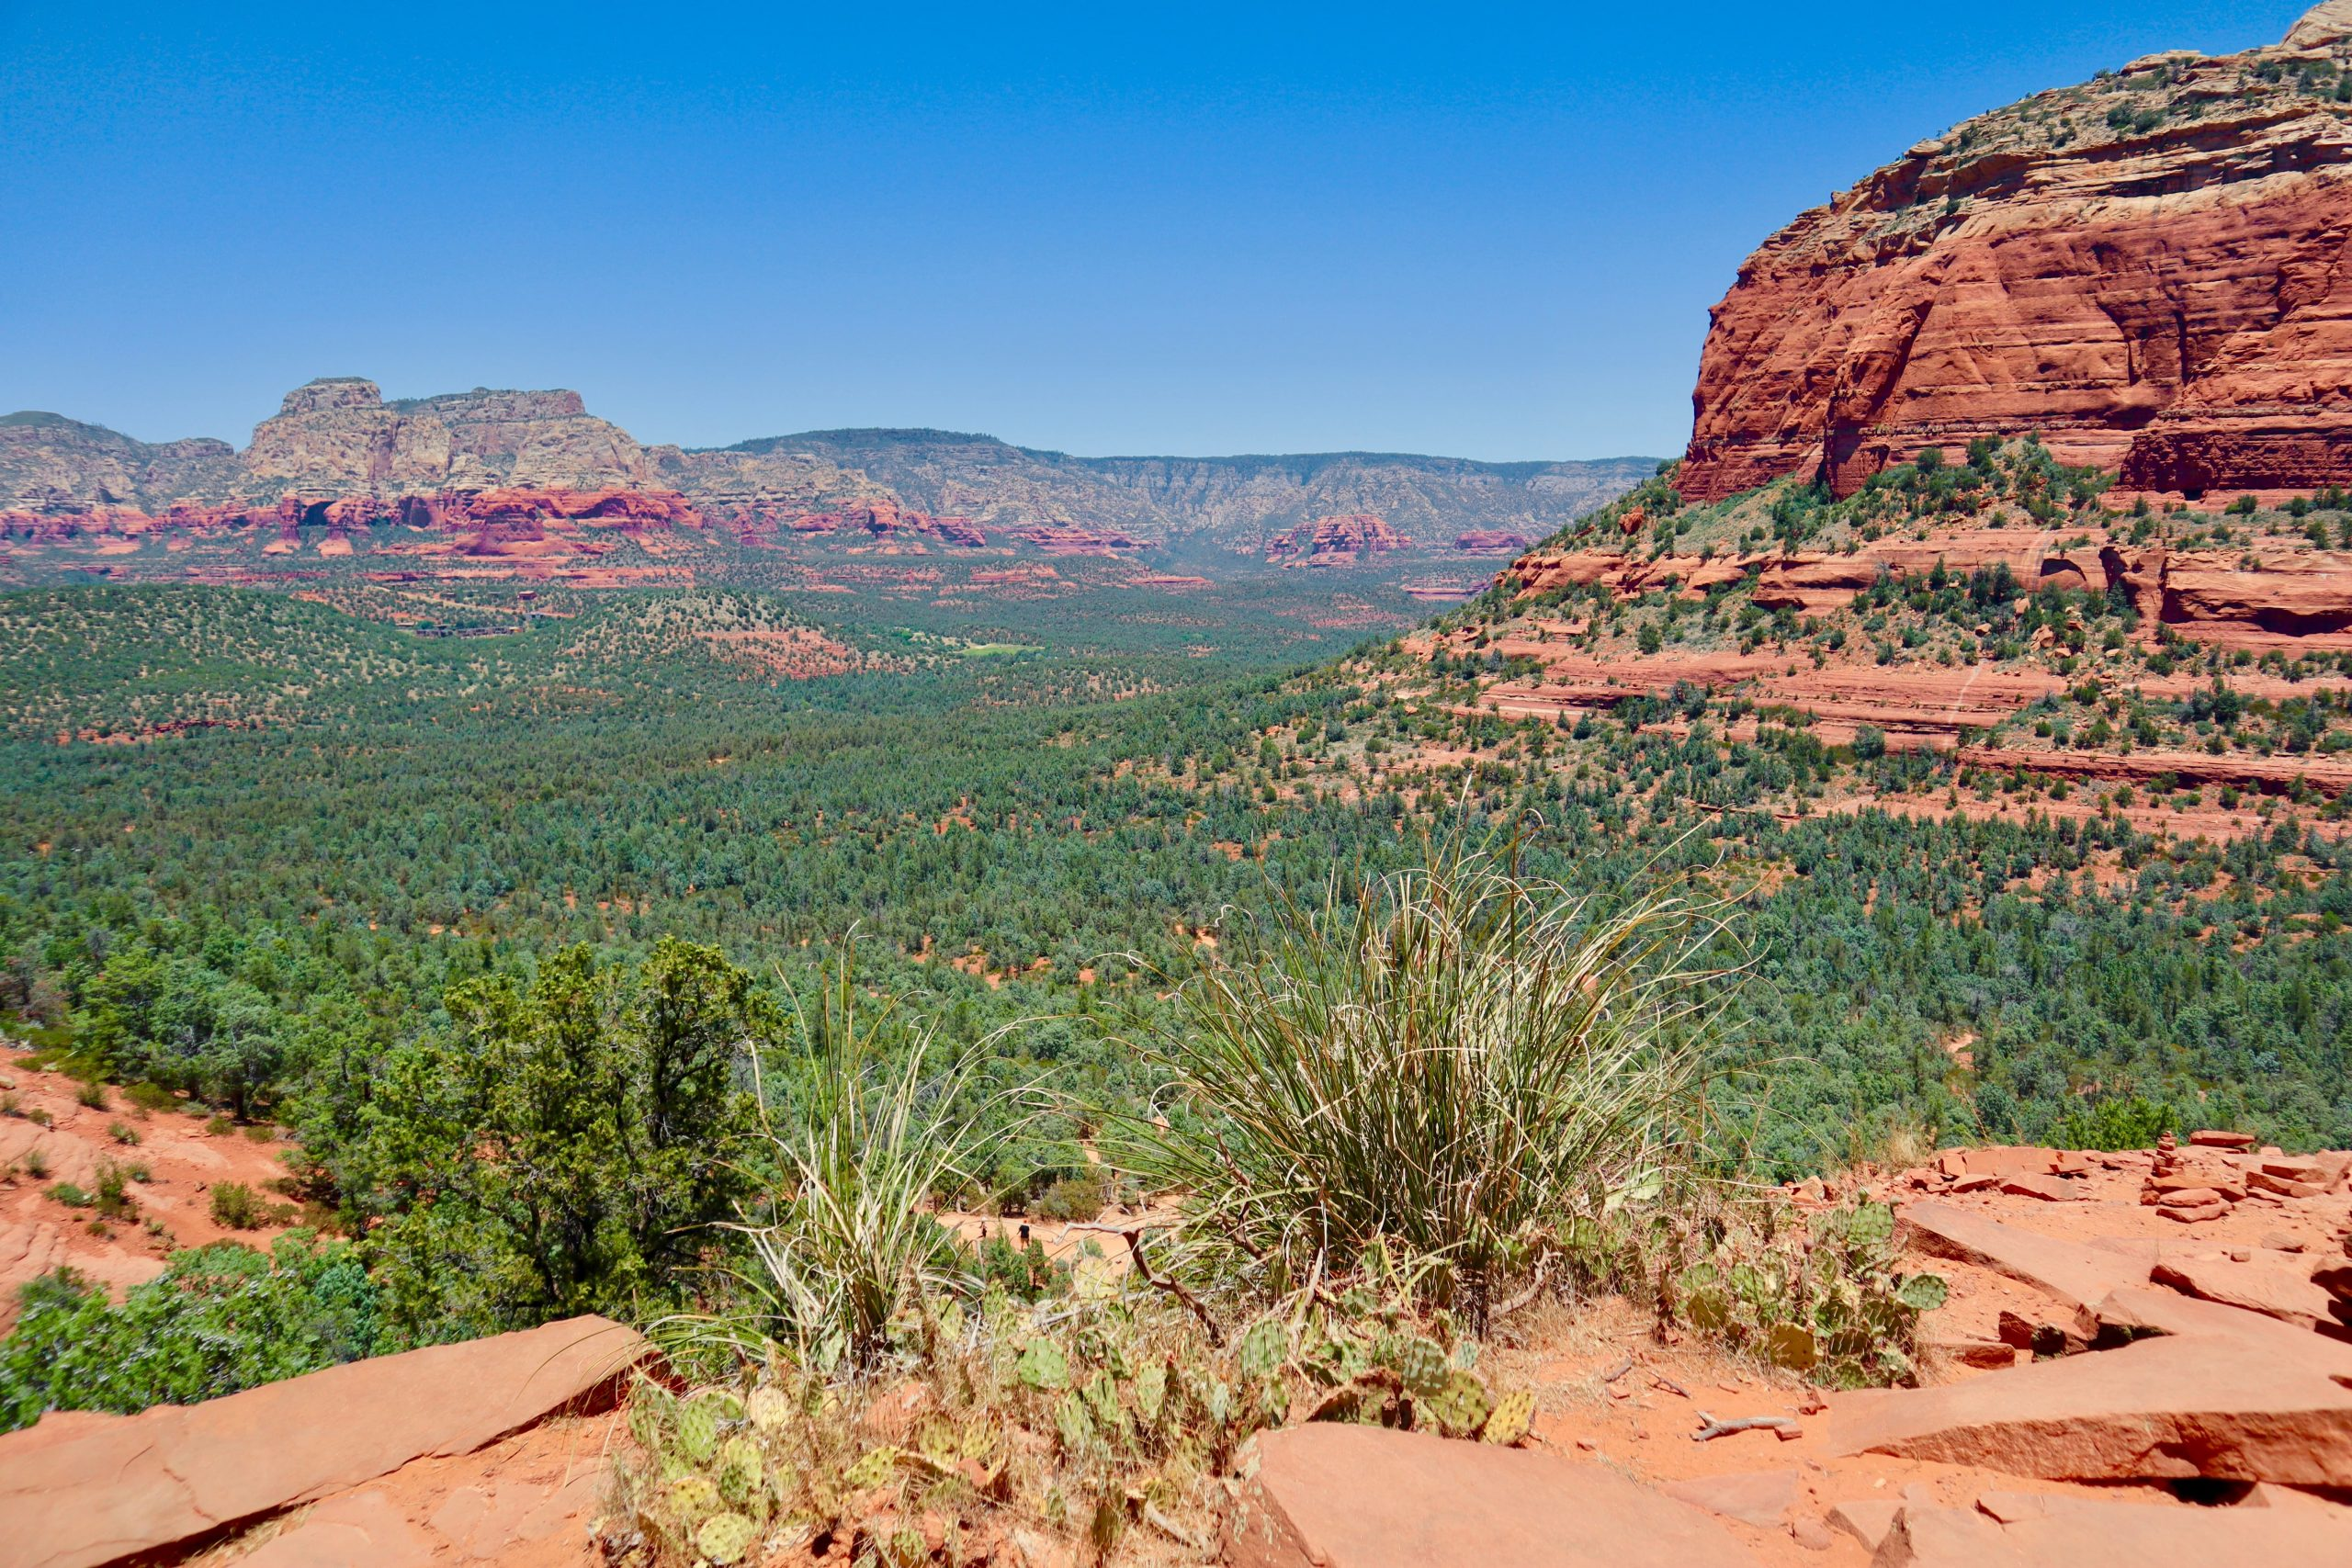 View from Devil's Bridge in Sedona, AZ